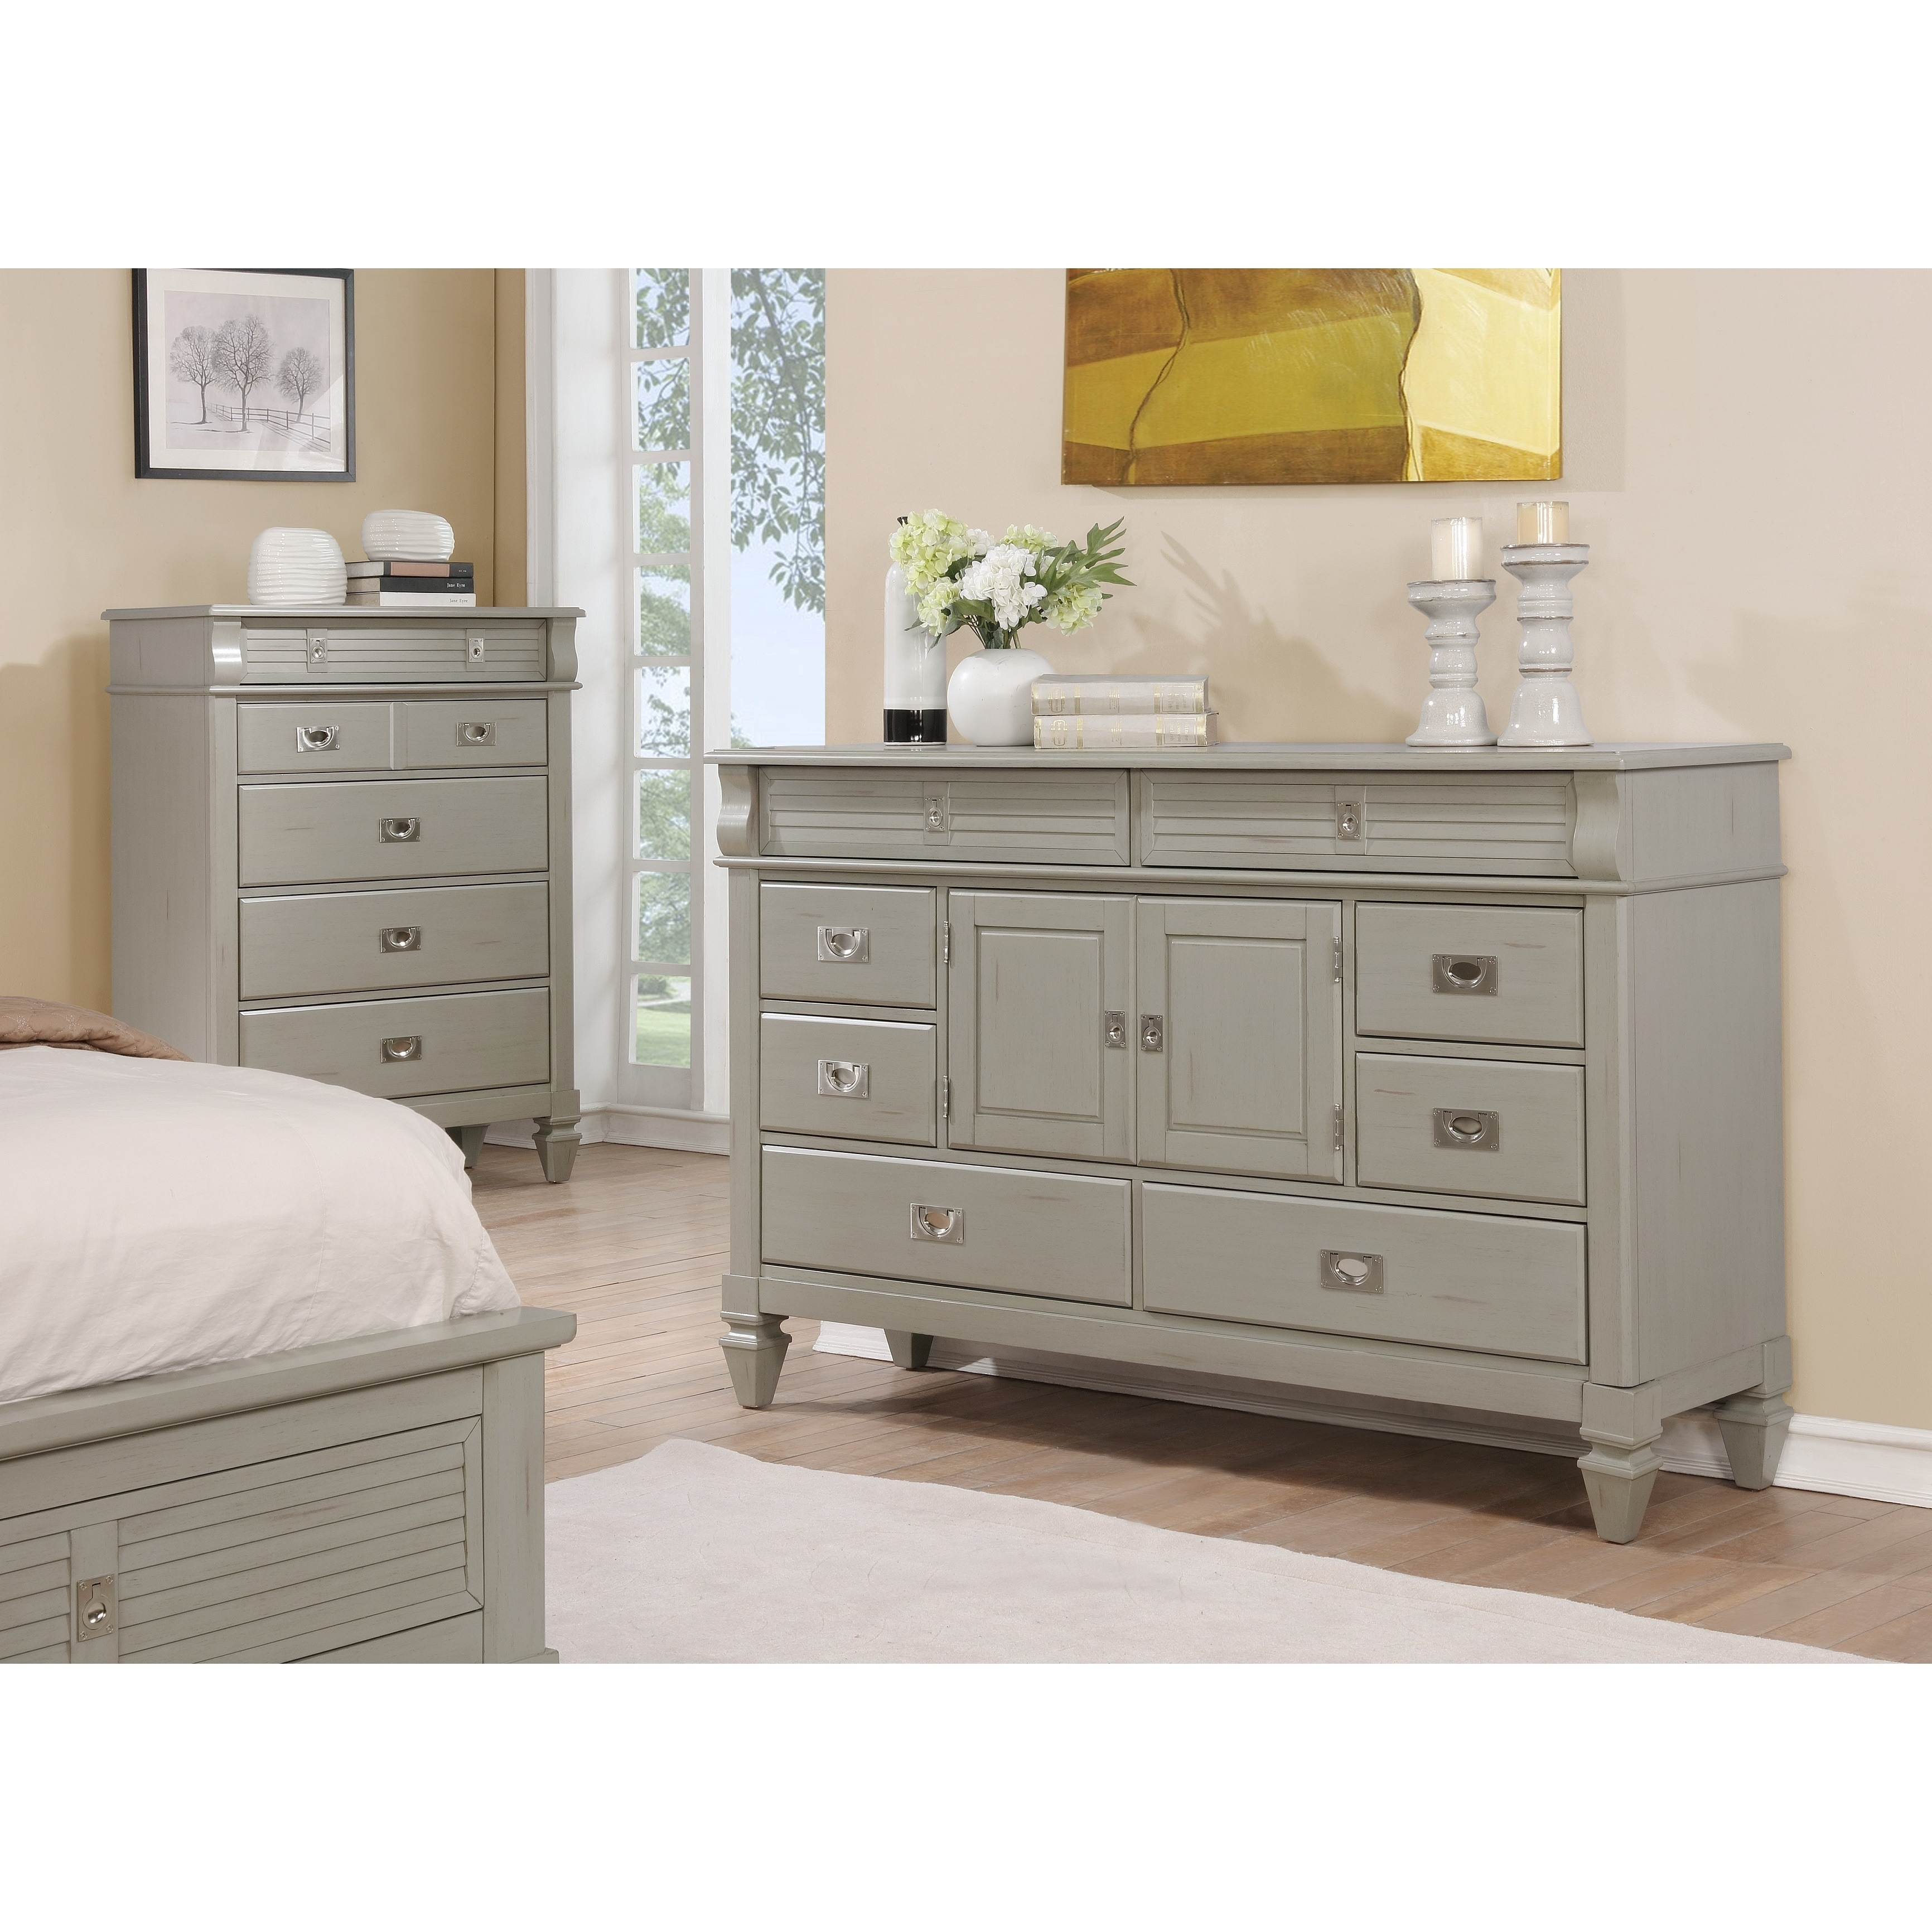 Shop The Gray Barn Barish Solid Wood Construction Bedroom Set with ...